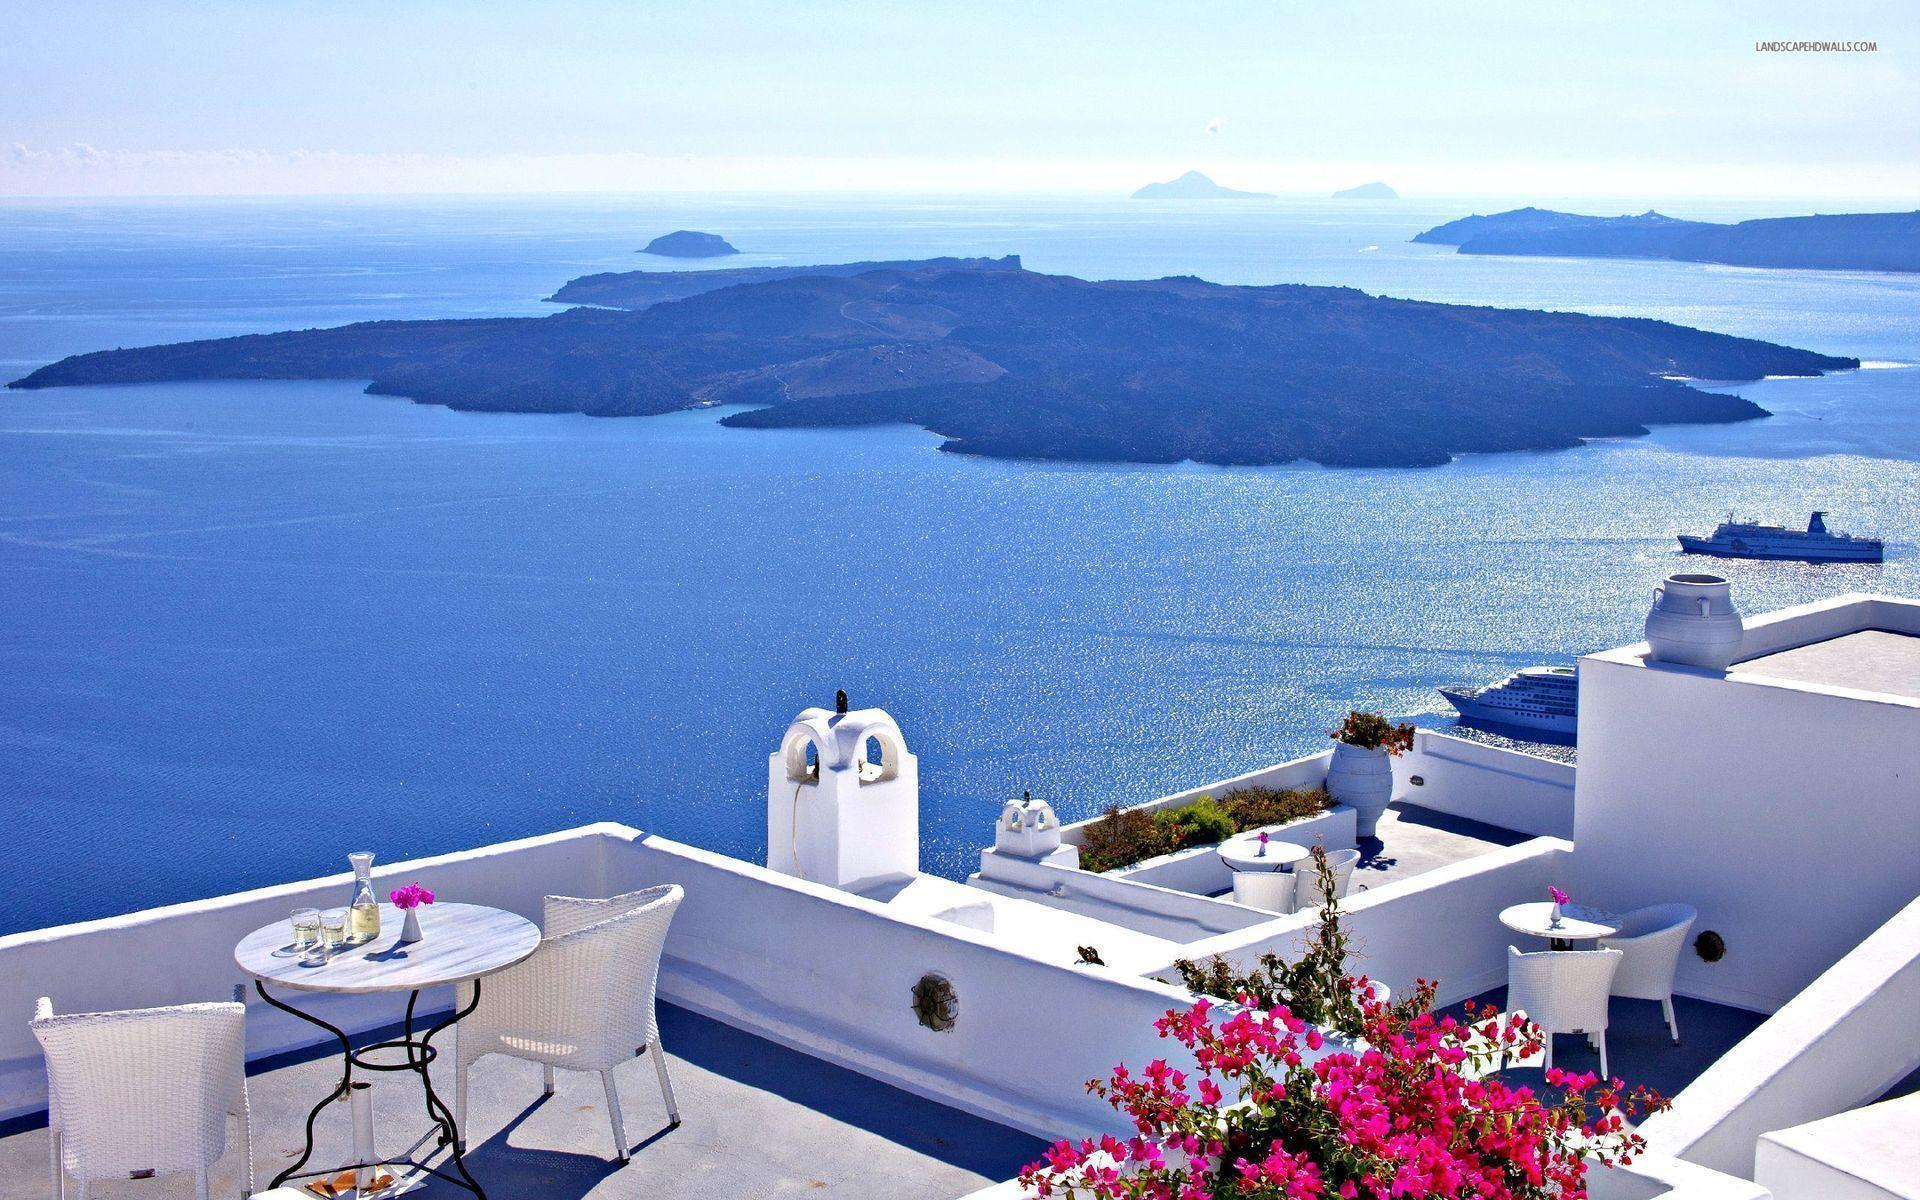 Santorini wallpapers #